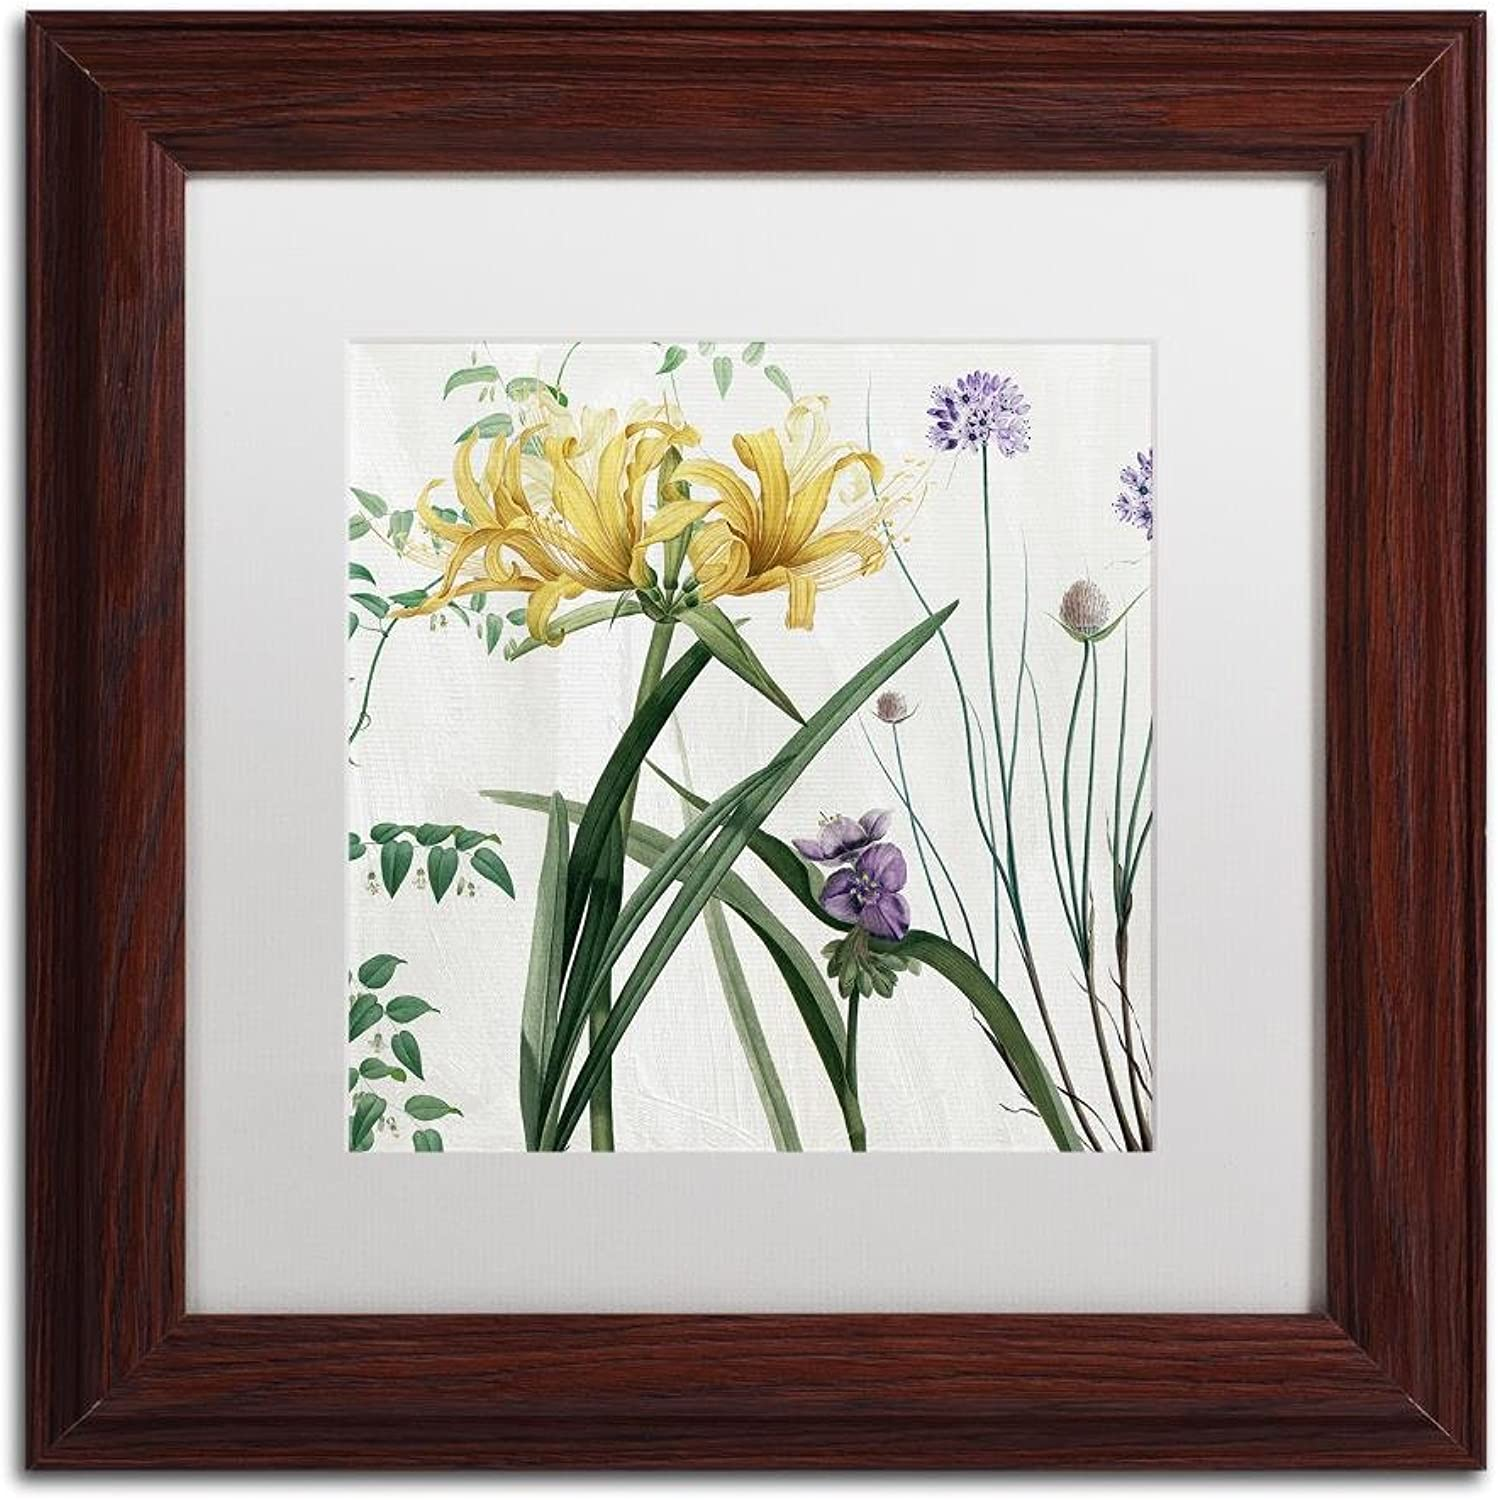 Trademark Fine Art Softly IV by color Bakery, White Matte, Wood Frame 11x11